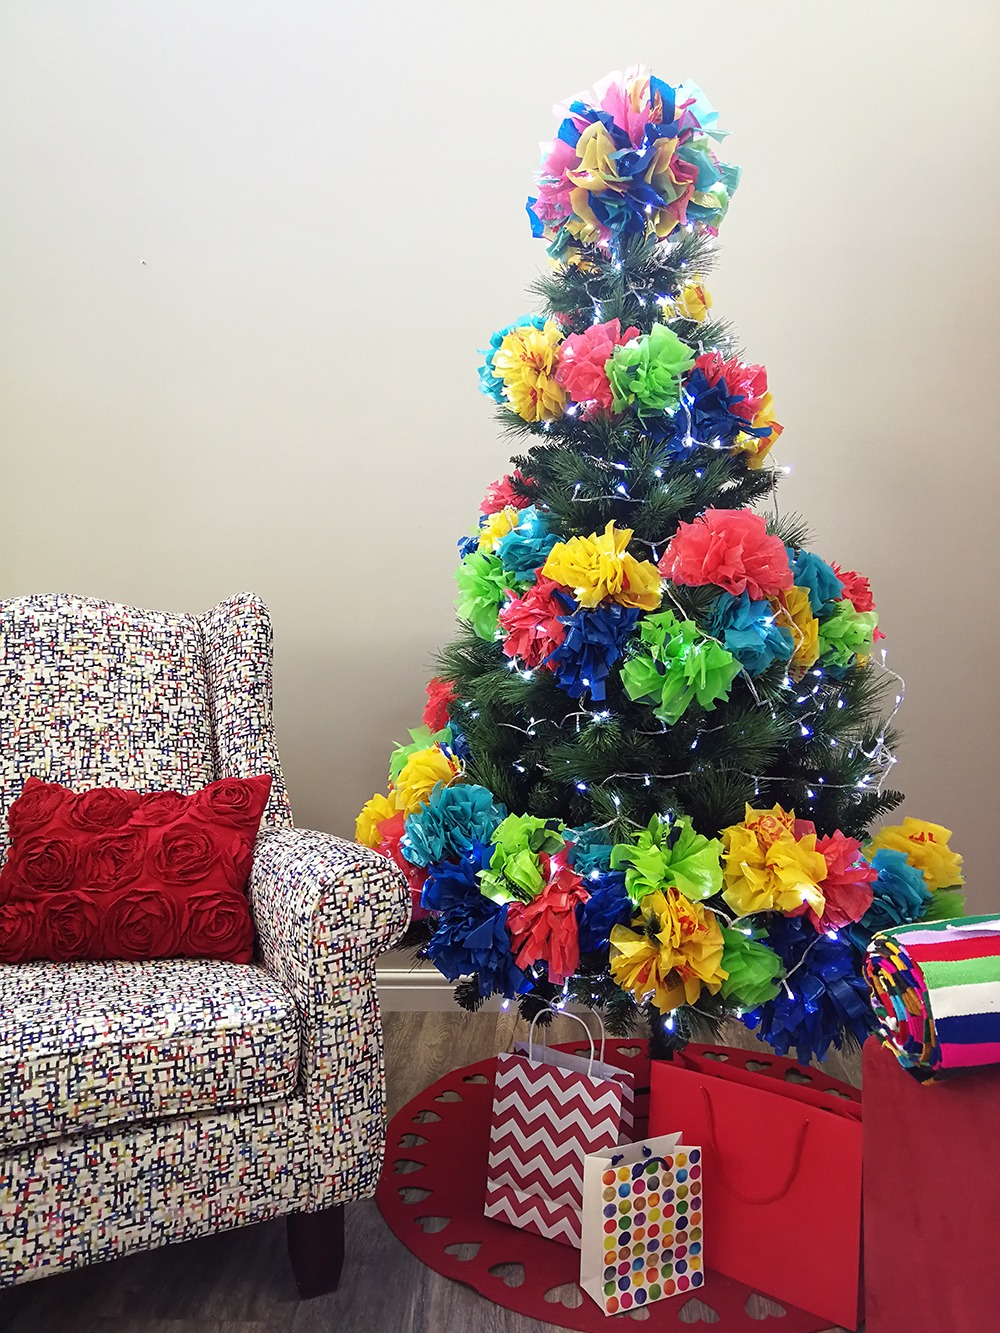 Plastic Christmas Tree.An Alternative Christmas Tree With Recycled Plastic Pom Poms